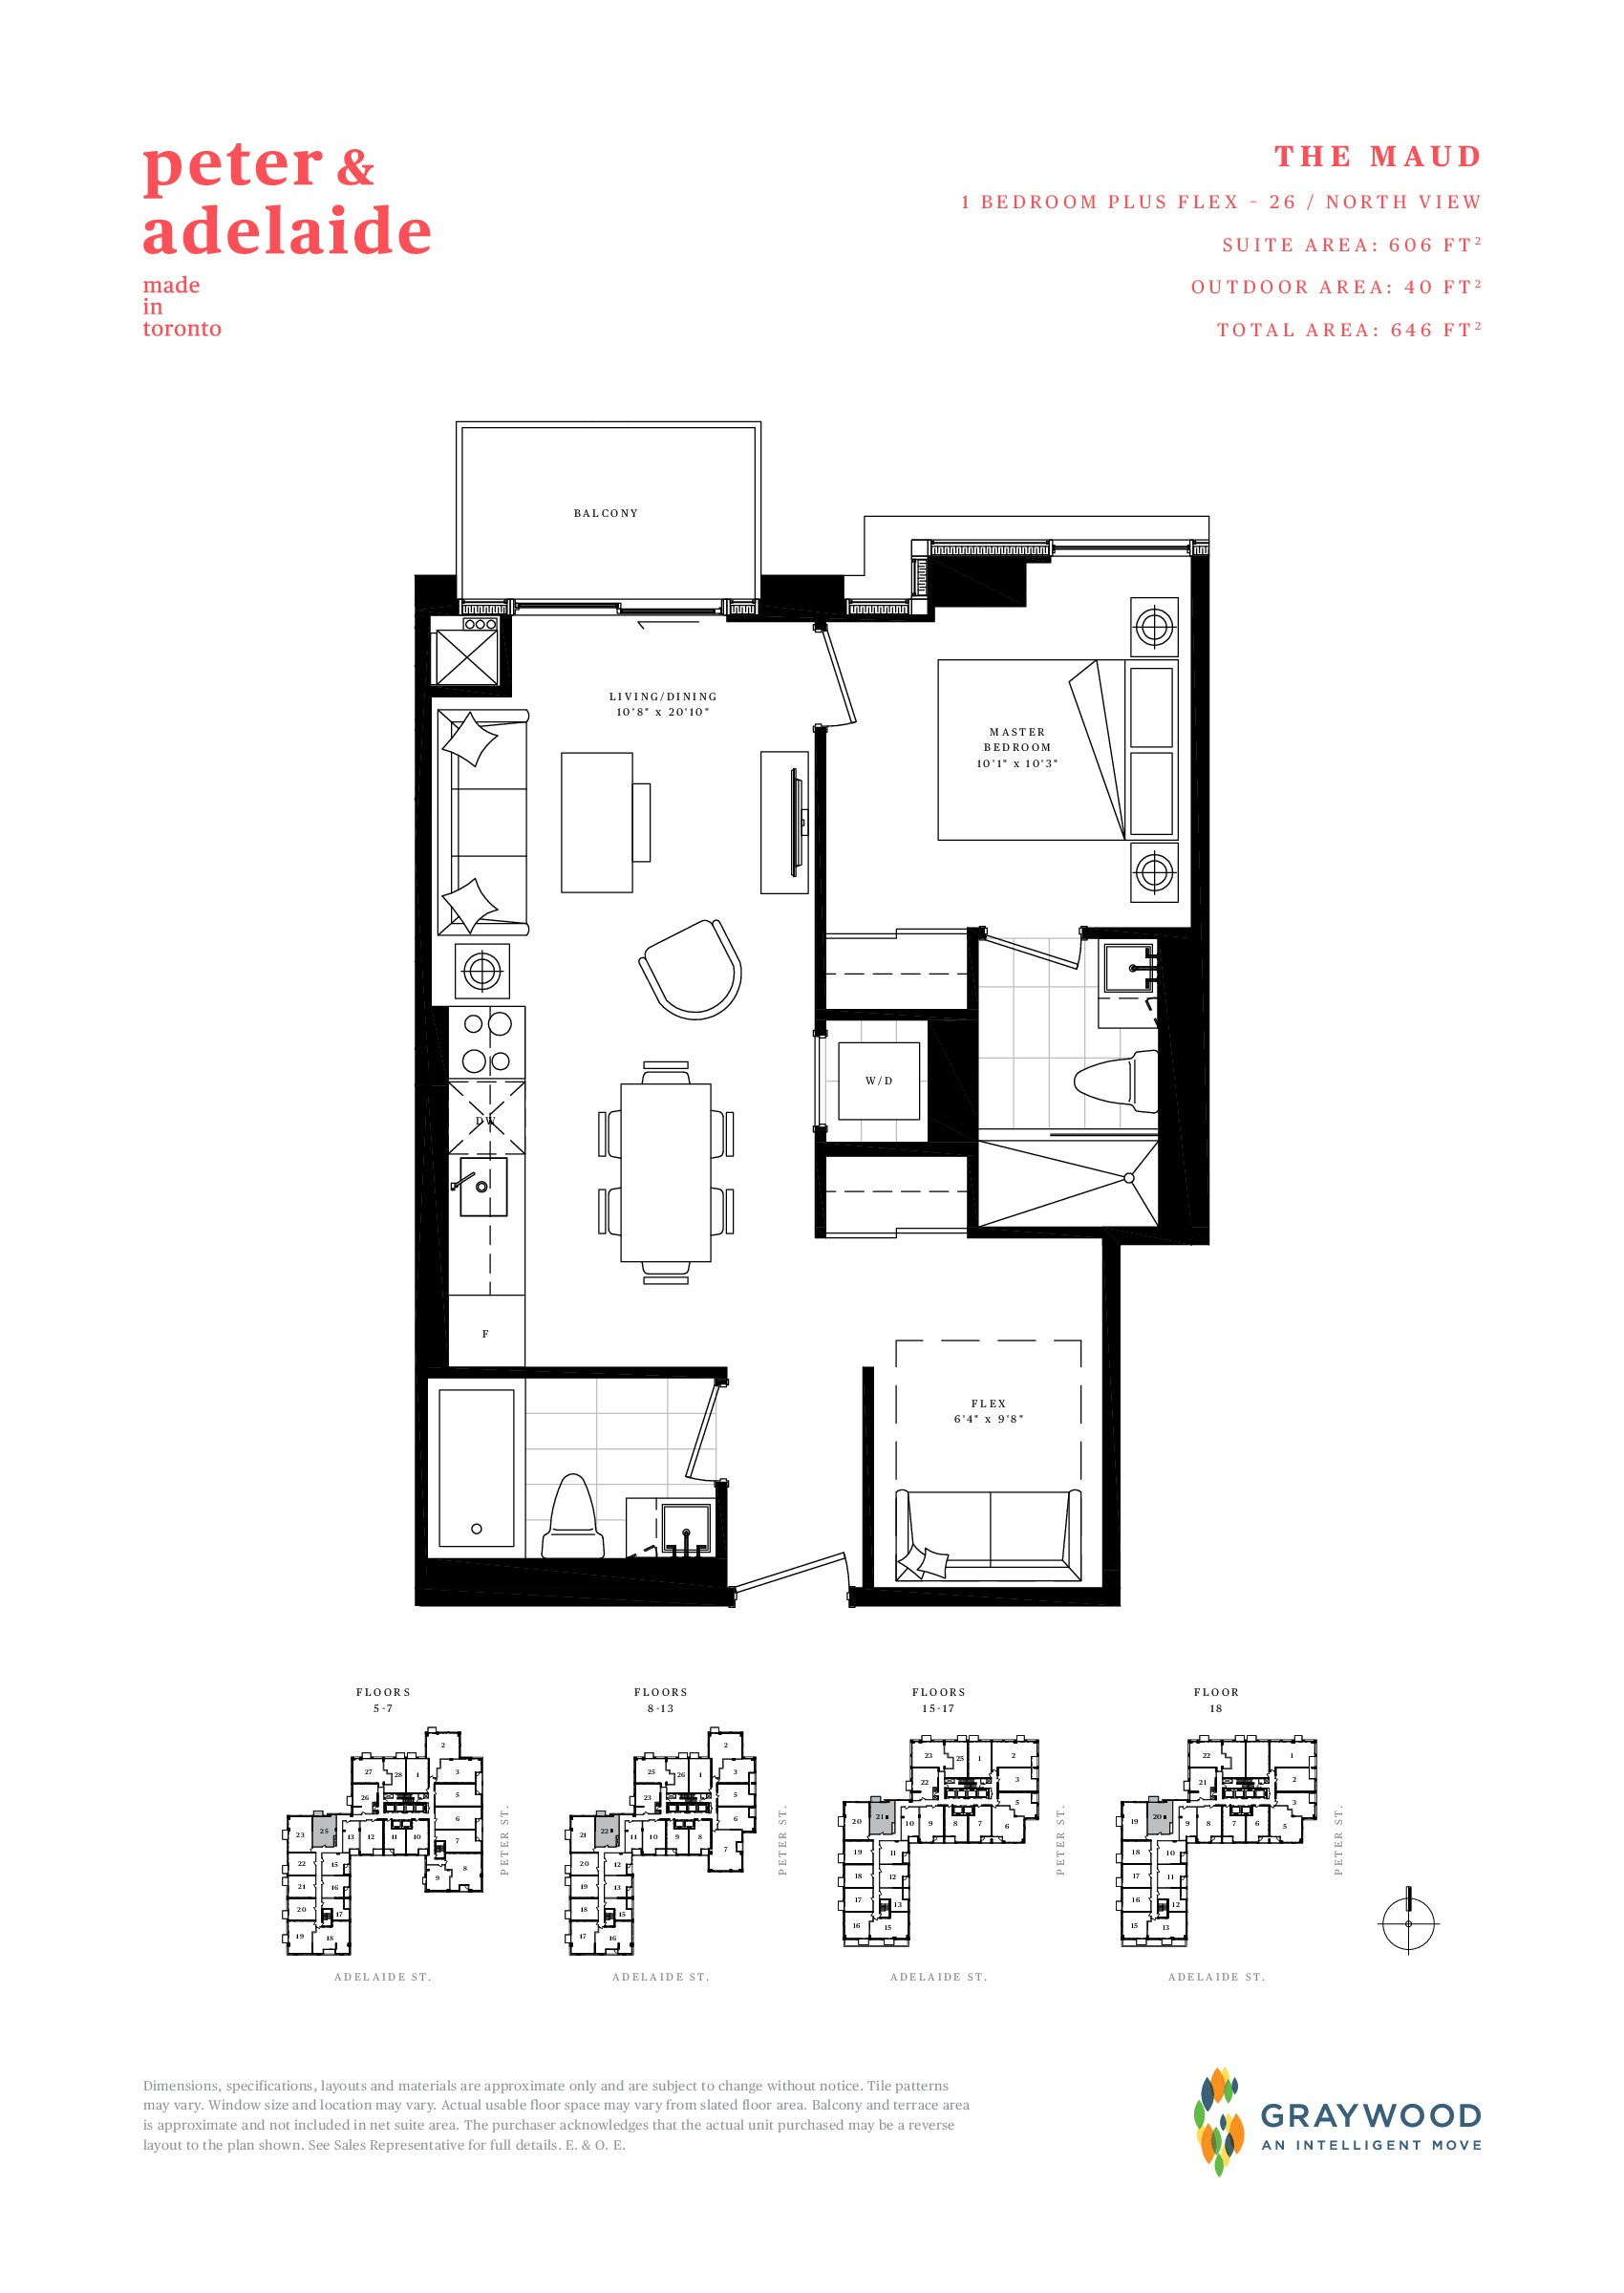 The Maud Floor Plan at Peter & Adelaide Condos - 606 sq.ft